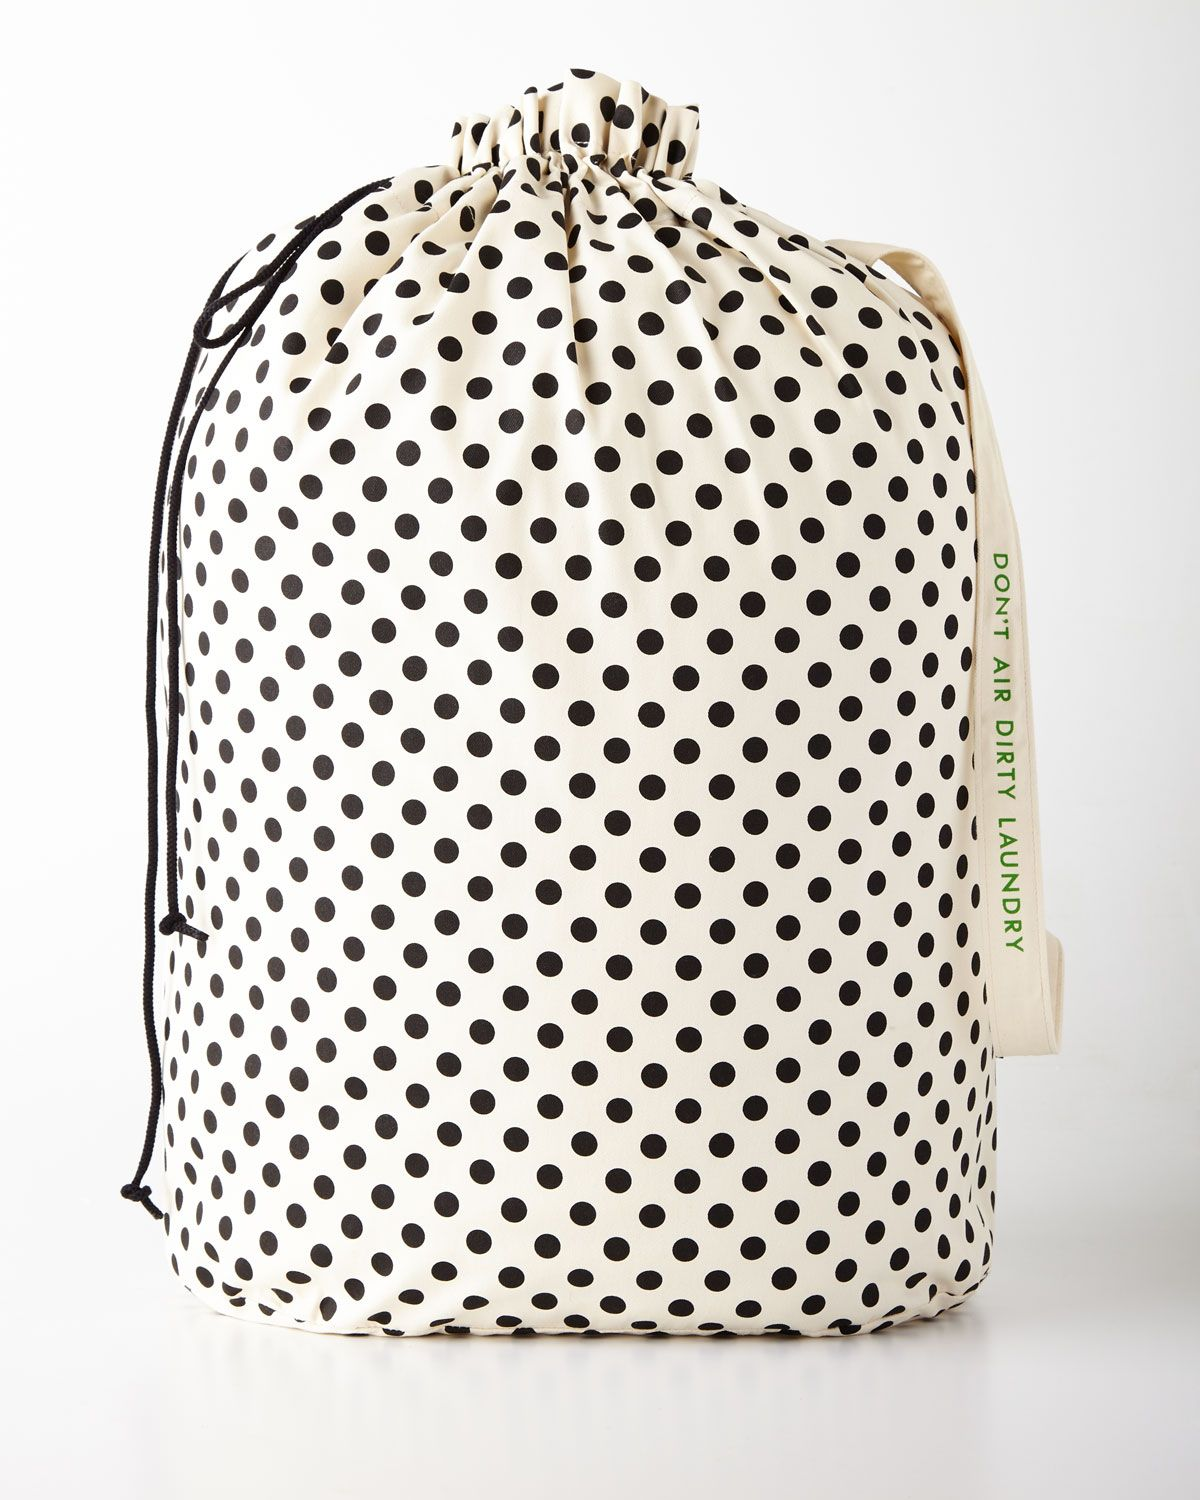 Kate Spade New York Black Dots Laundry Bag Canvas Laundry Bag